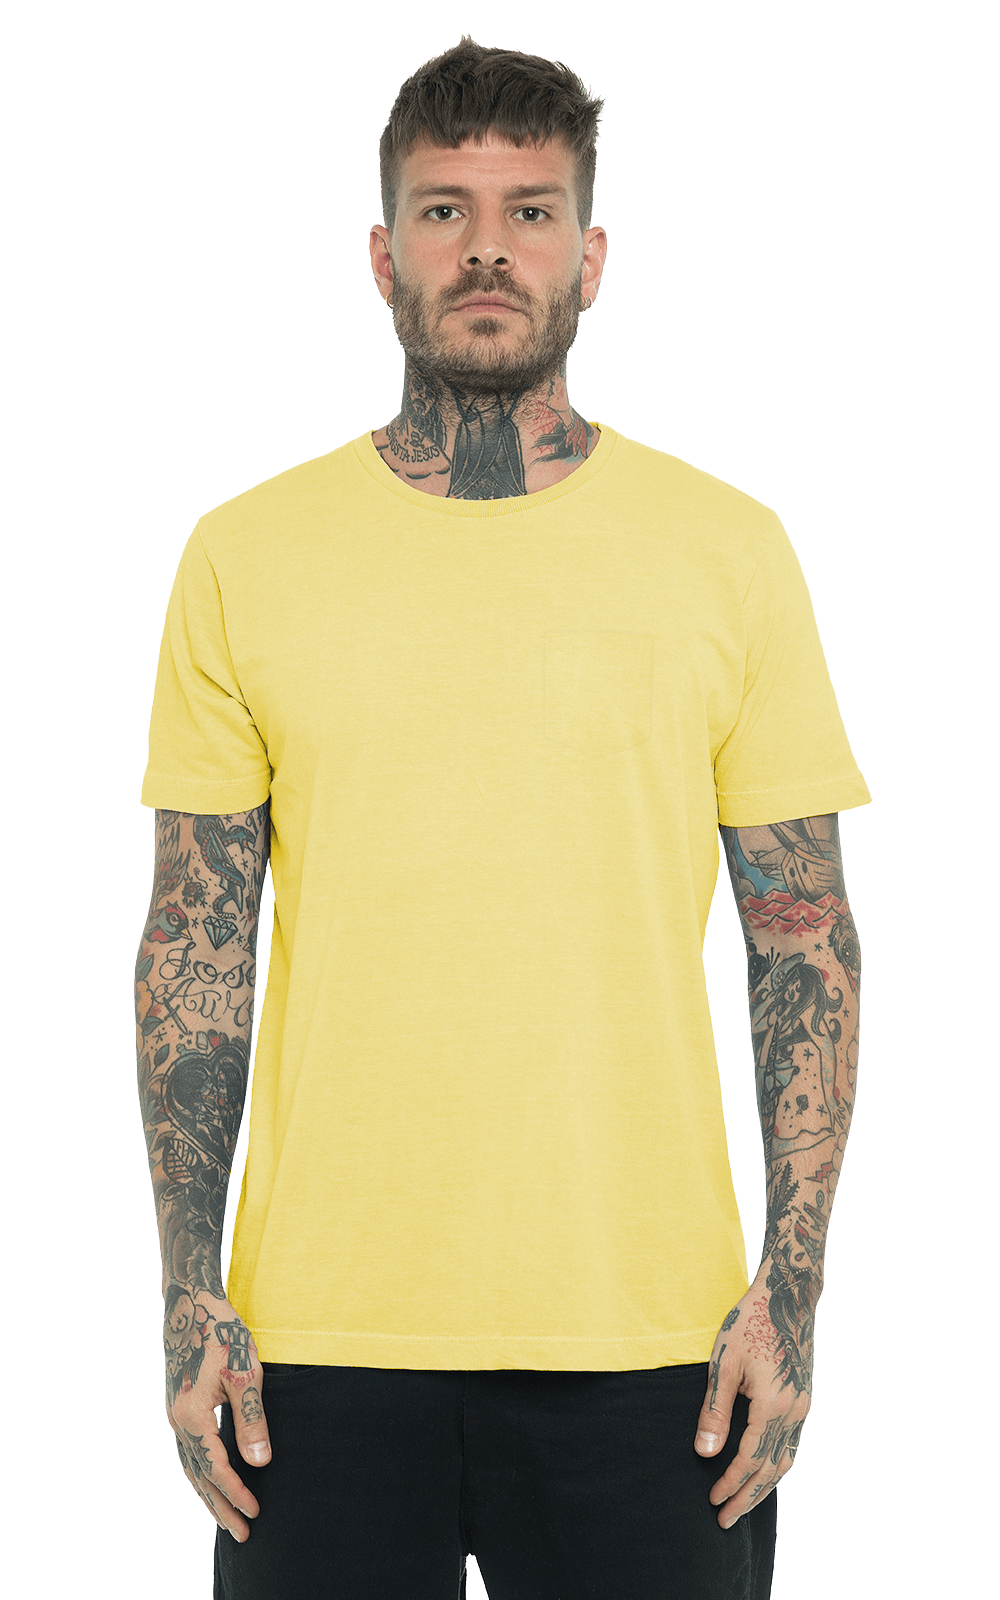 Camiseta_TinturadaBolso_Yellow_Frente